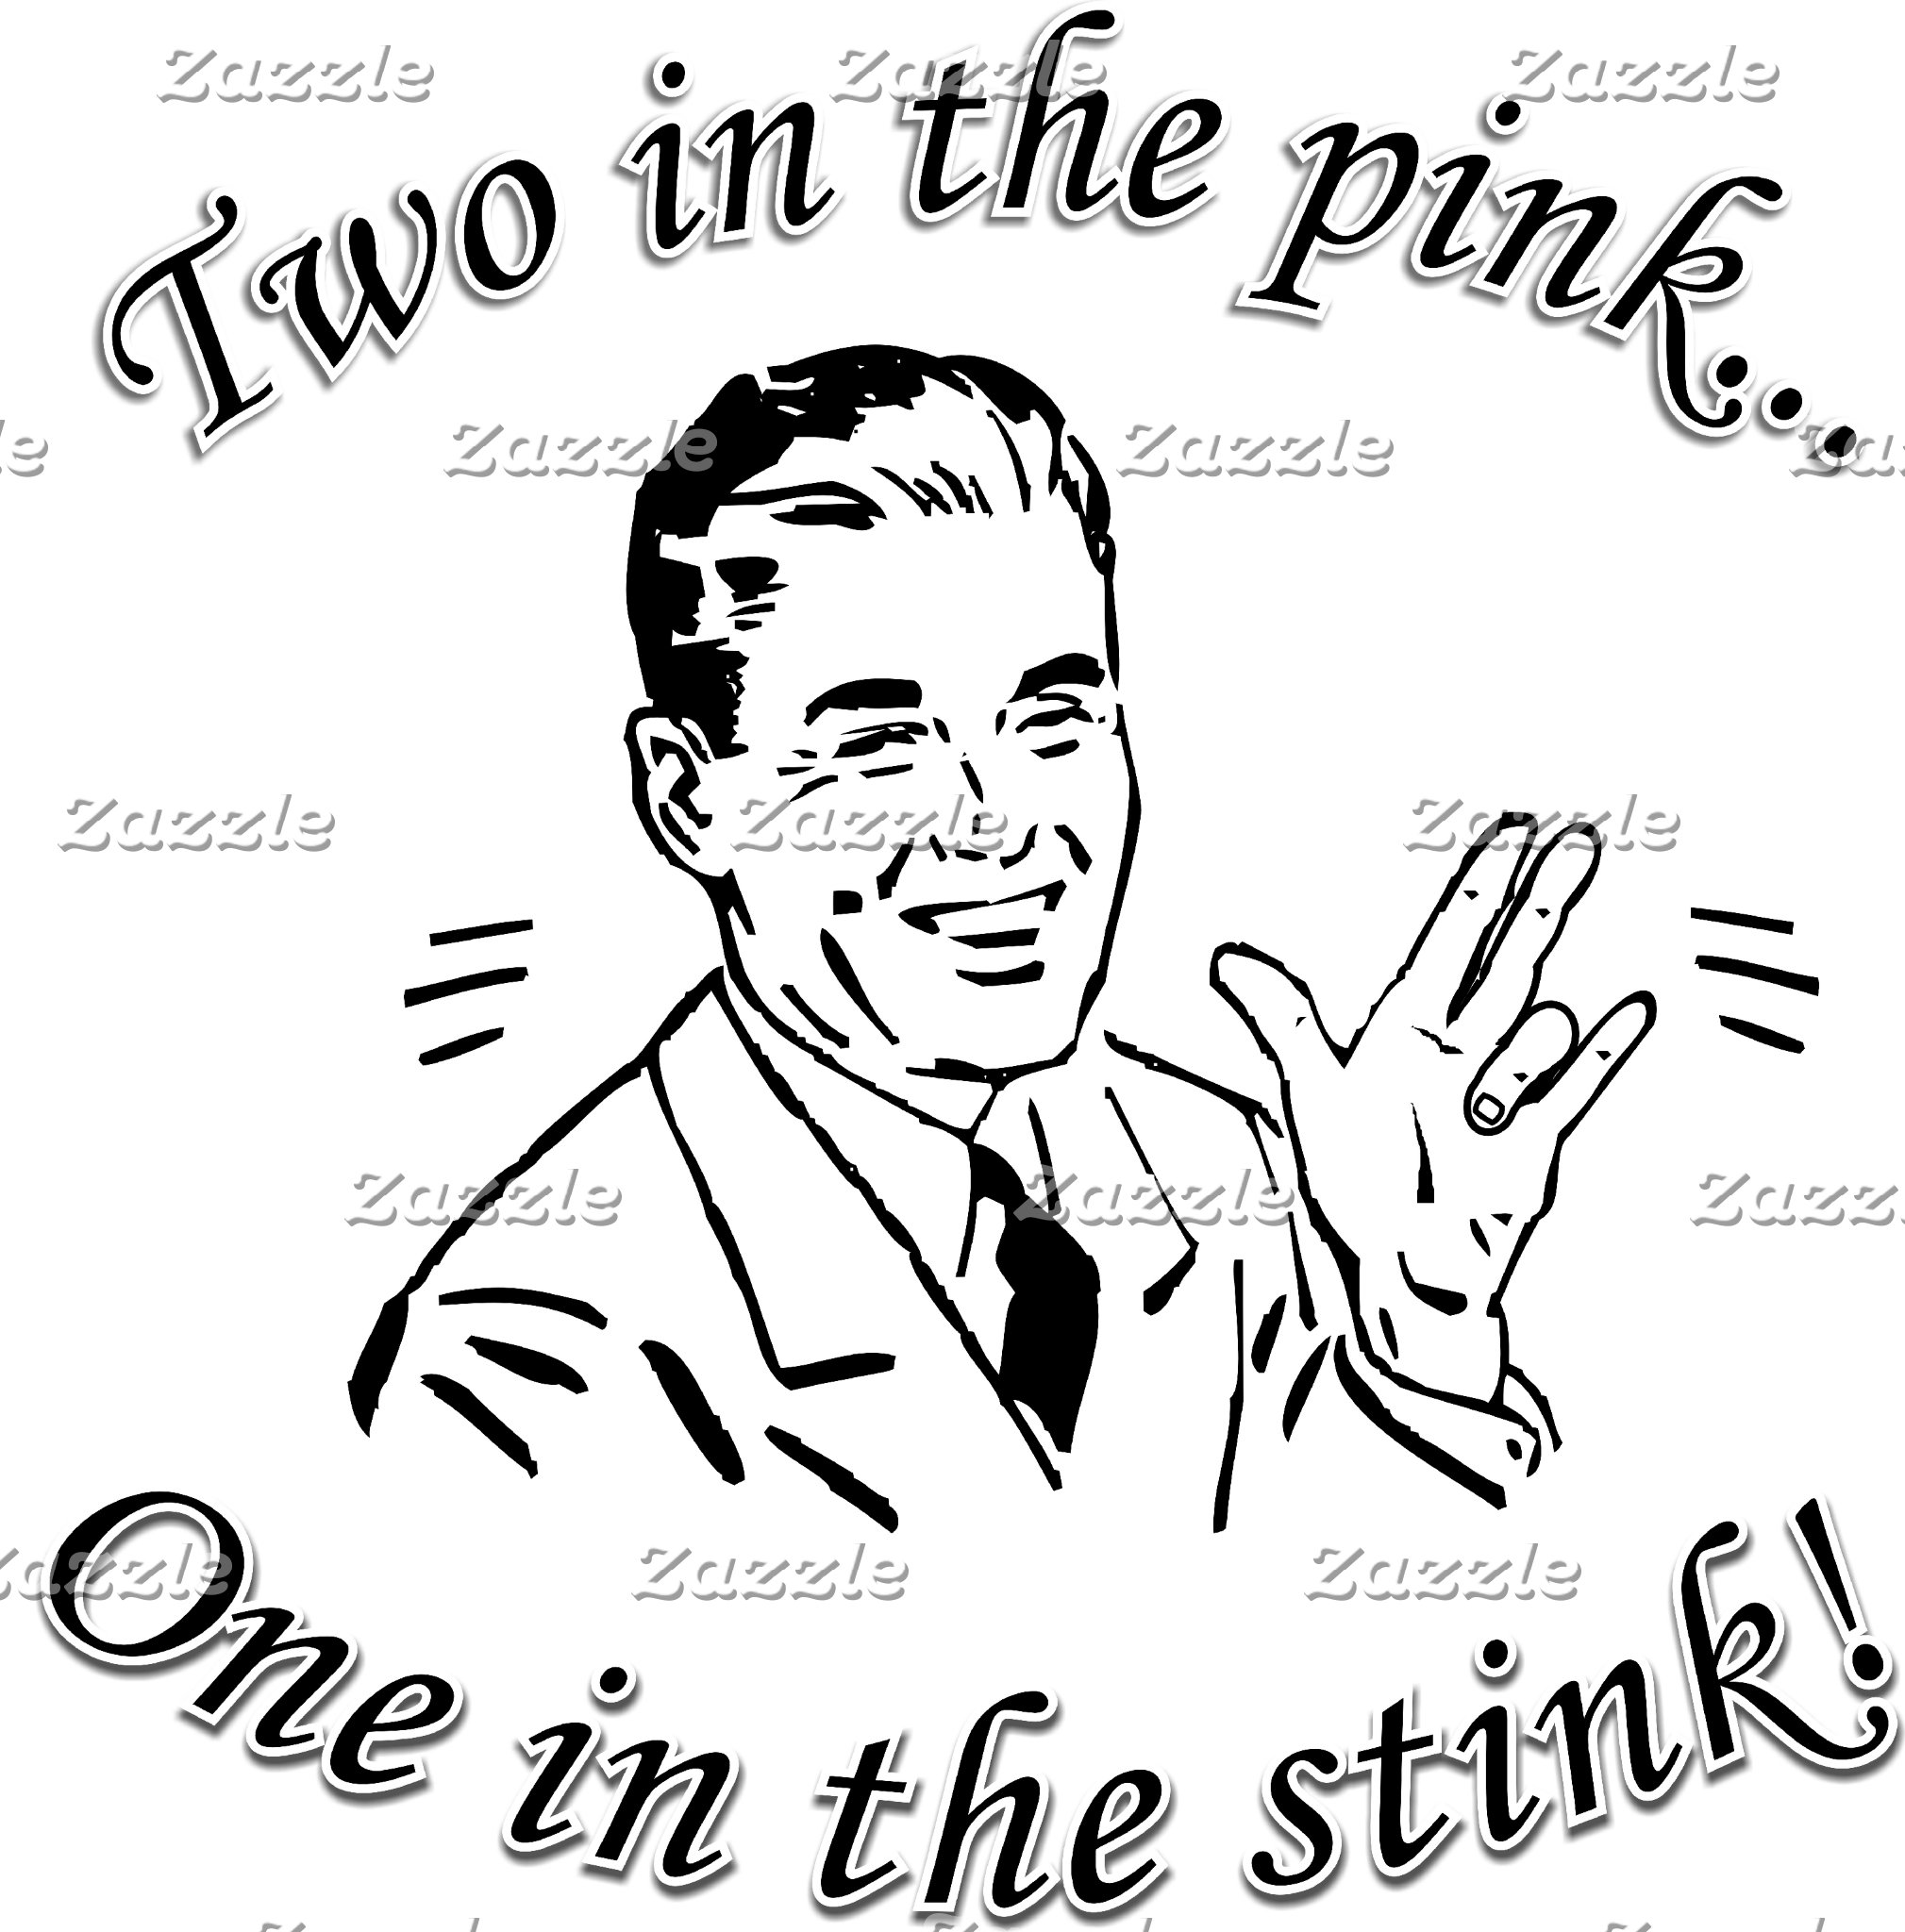 TWO IN THE PINK, ONE IN THE STINK!